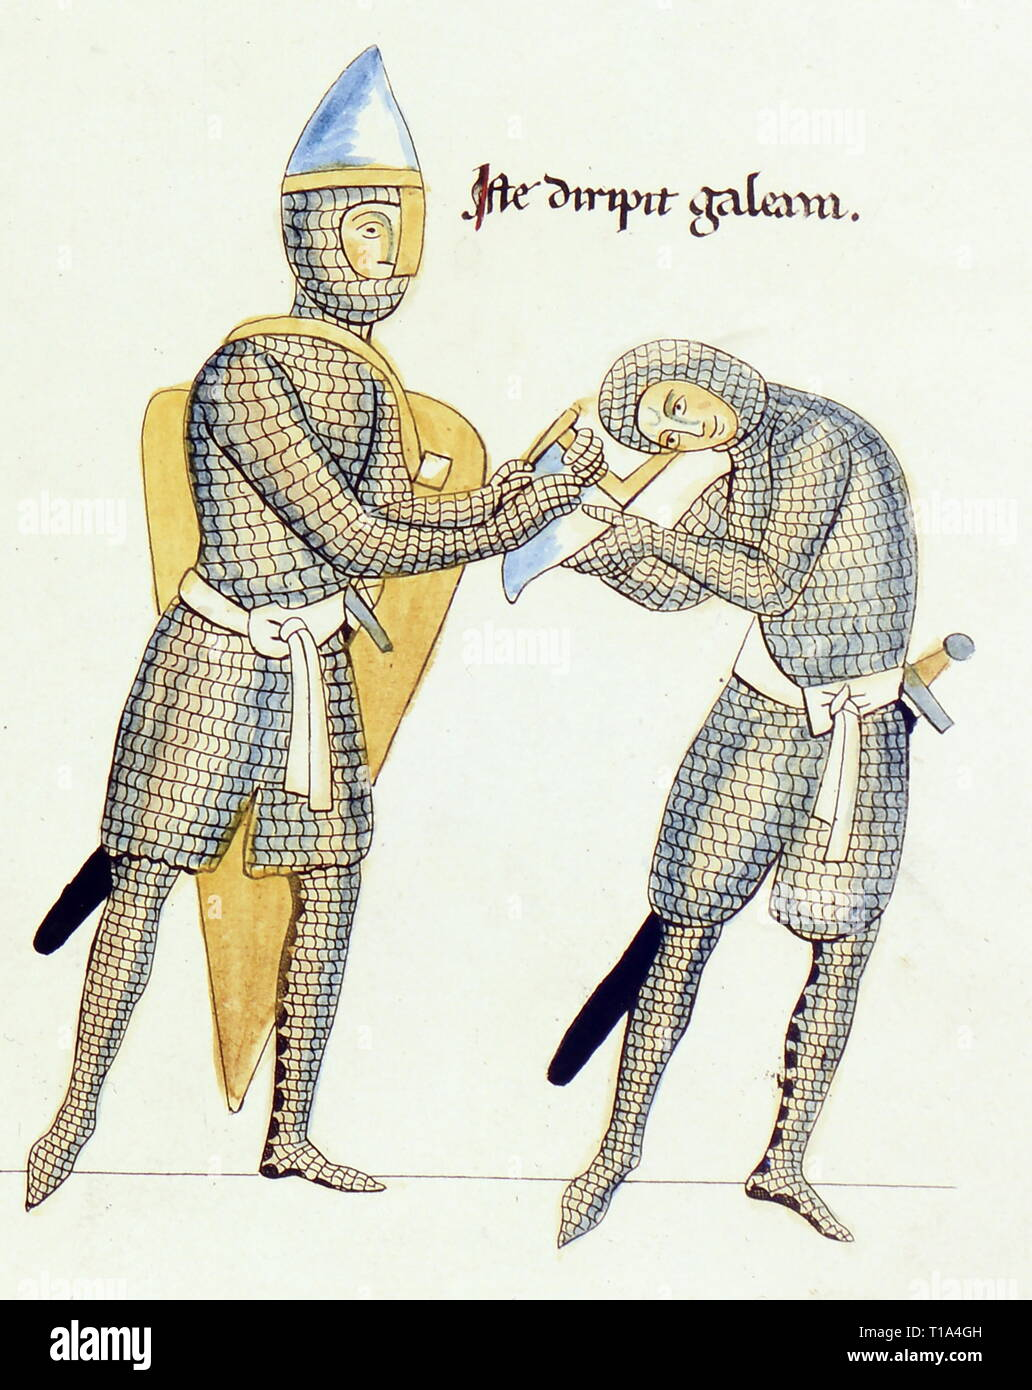 religion, biblical scene, parable of conflict of the stinginess and the largesse, coloured copper engraving by Christian Moritz Engelhardt, 1818, detail, based on miniature, Hortus deliciarum of the Herrad of Landsberg, circa 1180, Bavarian National Museum, Munich, Artist's Copyright has not to be cleared - Stock Image